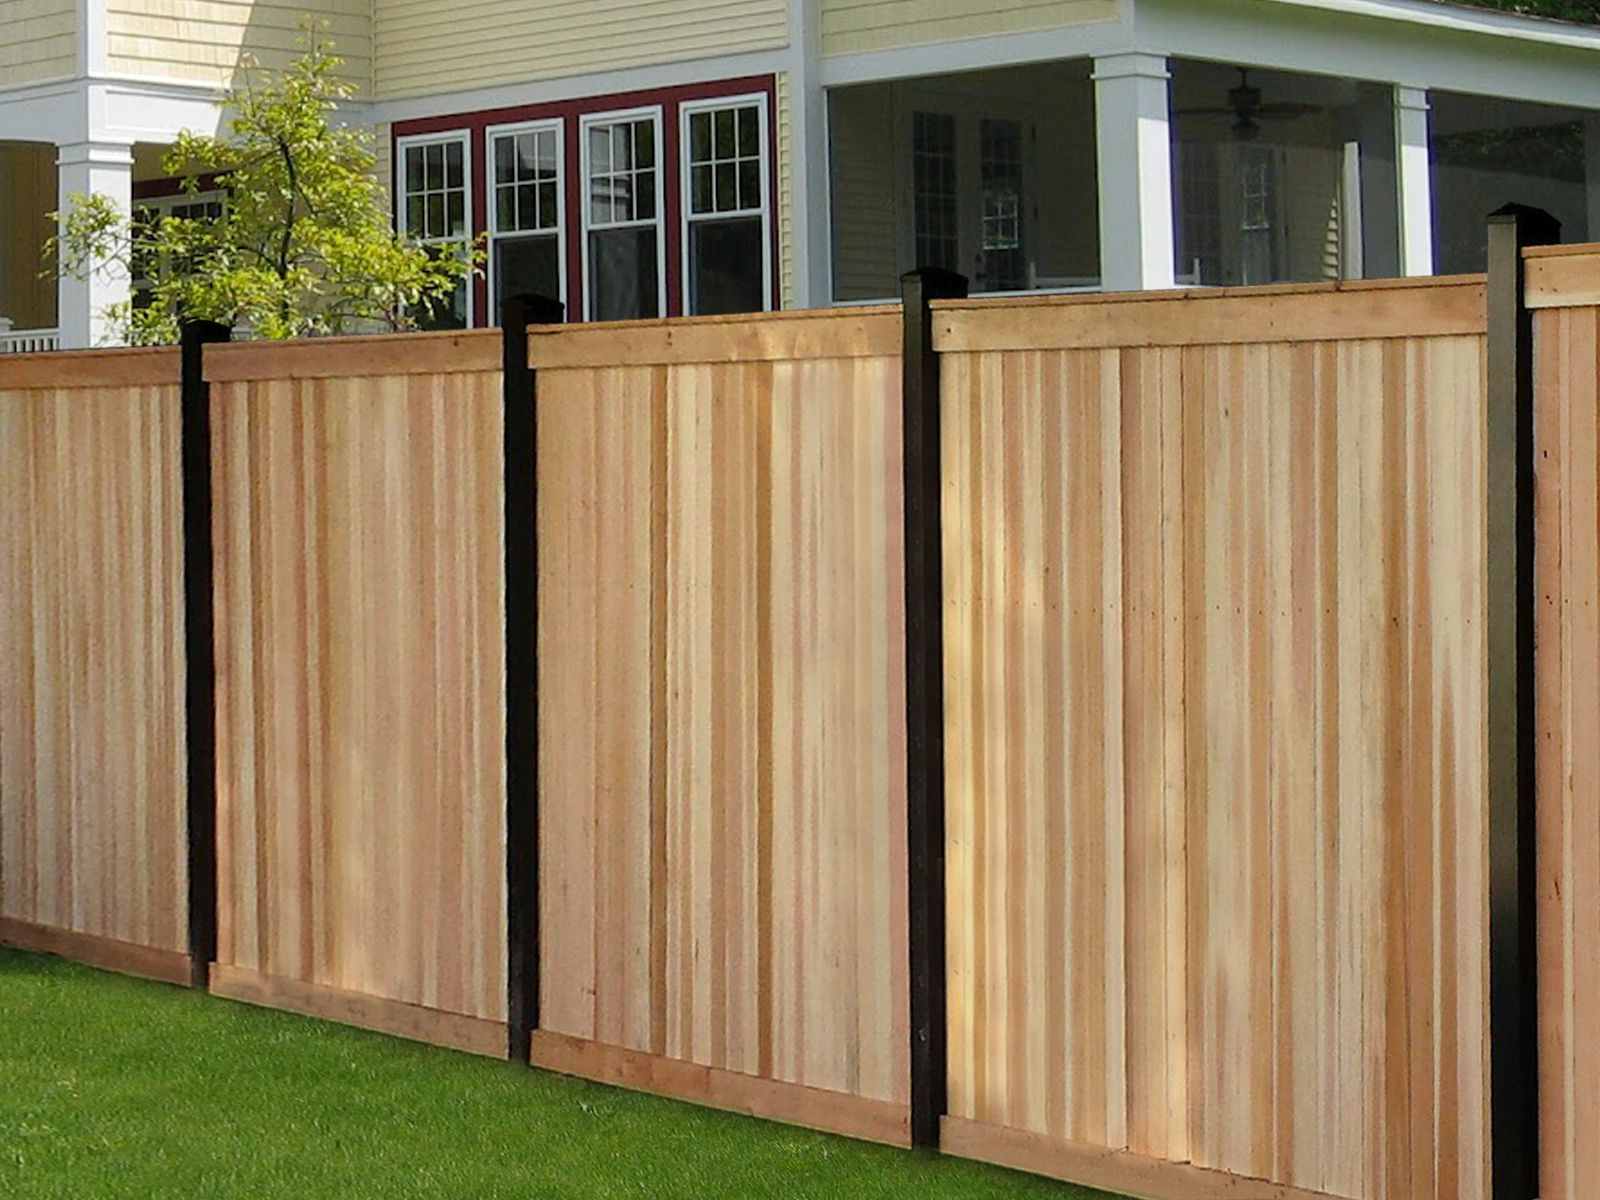 Black Painted Wood Fencing Google Search Fencing In